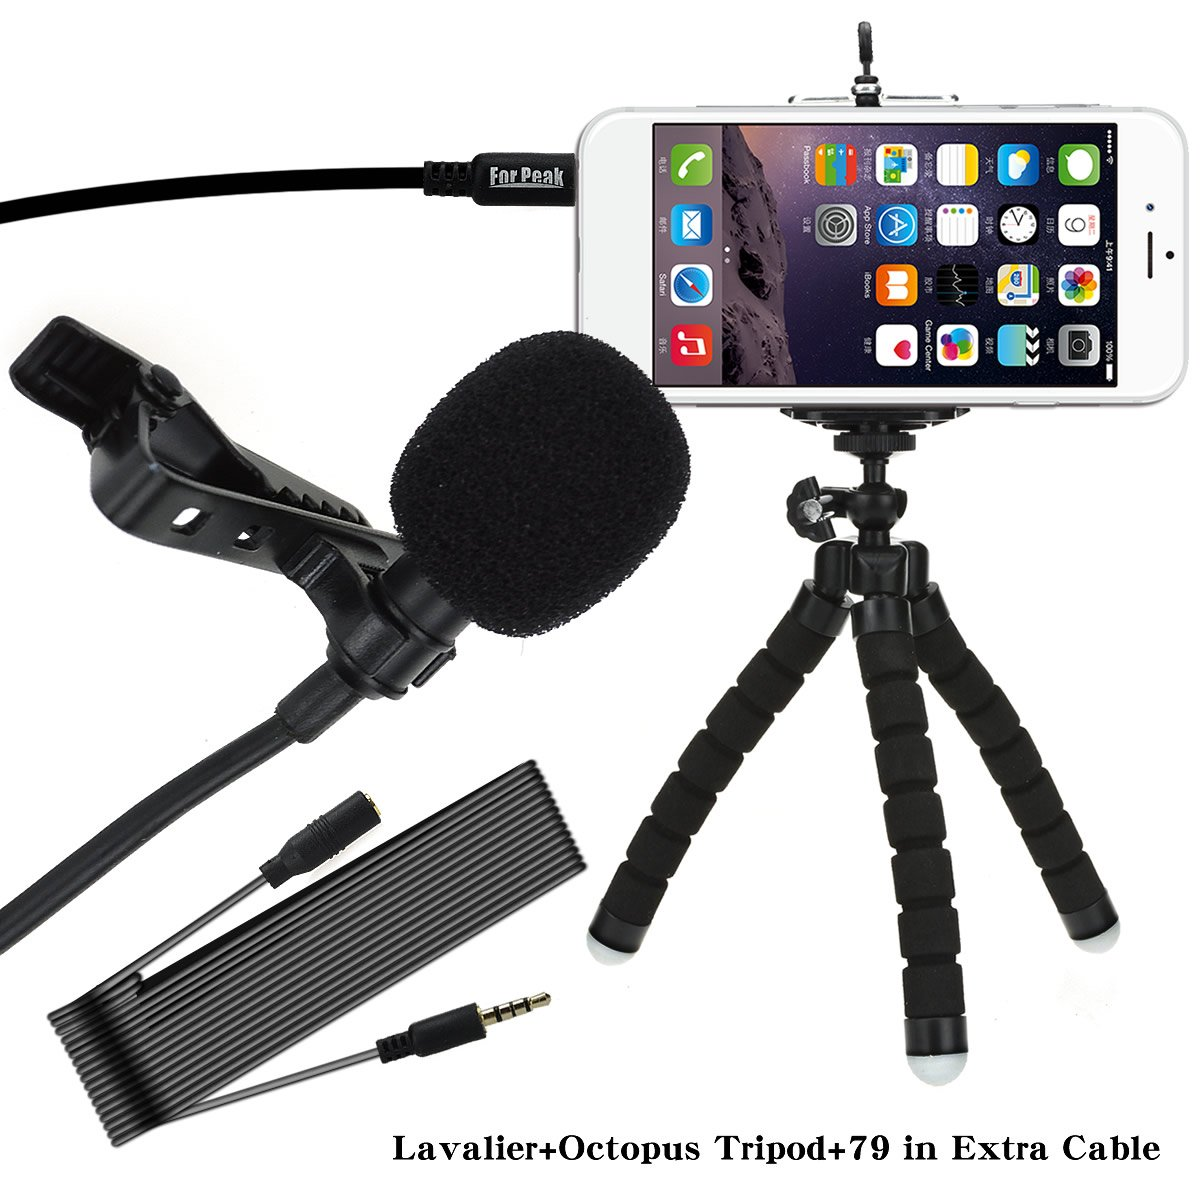 Lavalier Lapel Microphone Clip On Omnidirectional Condenser Mic with Flexible Aluminum Phone Tripod For Apple iPhone Android Samsung and Smartphones